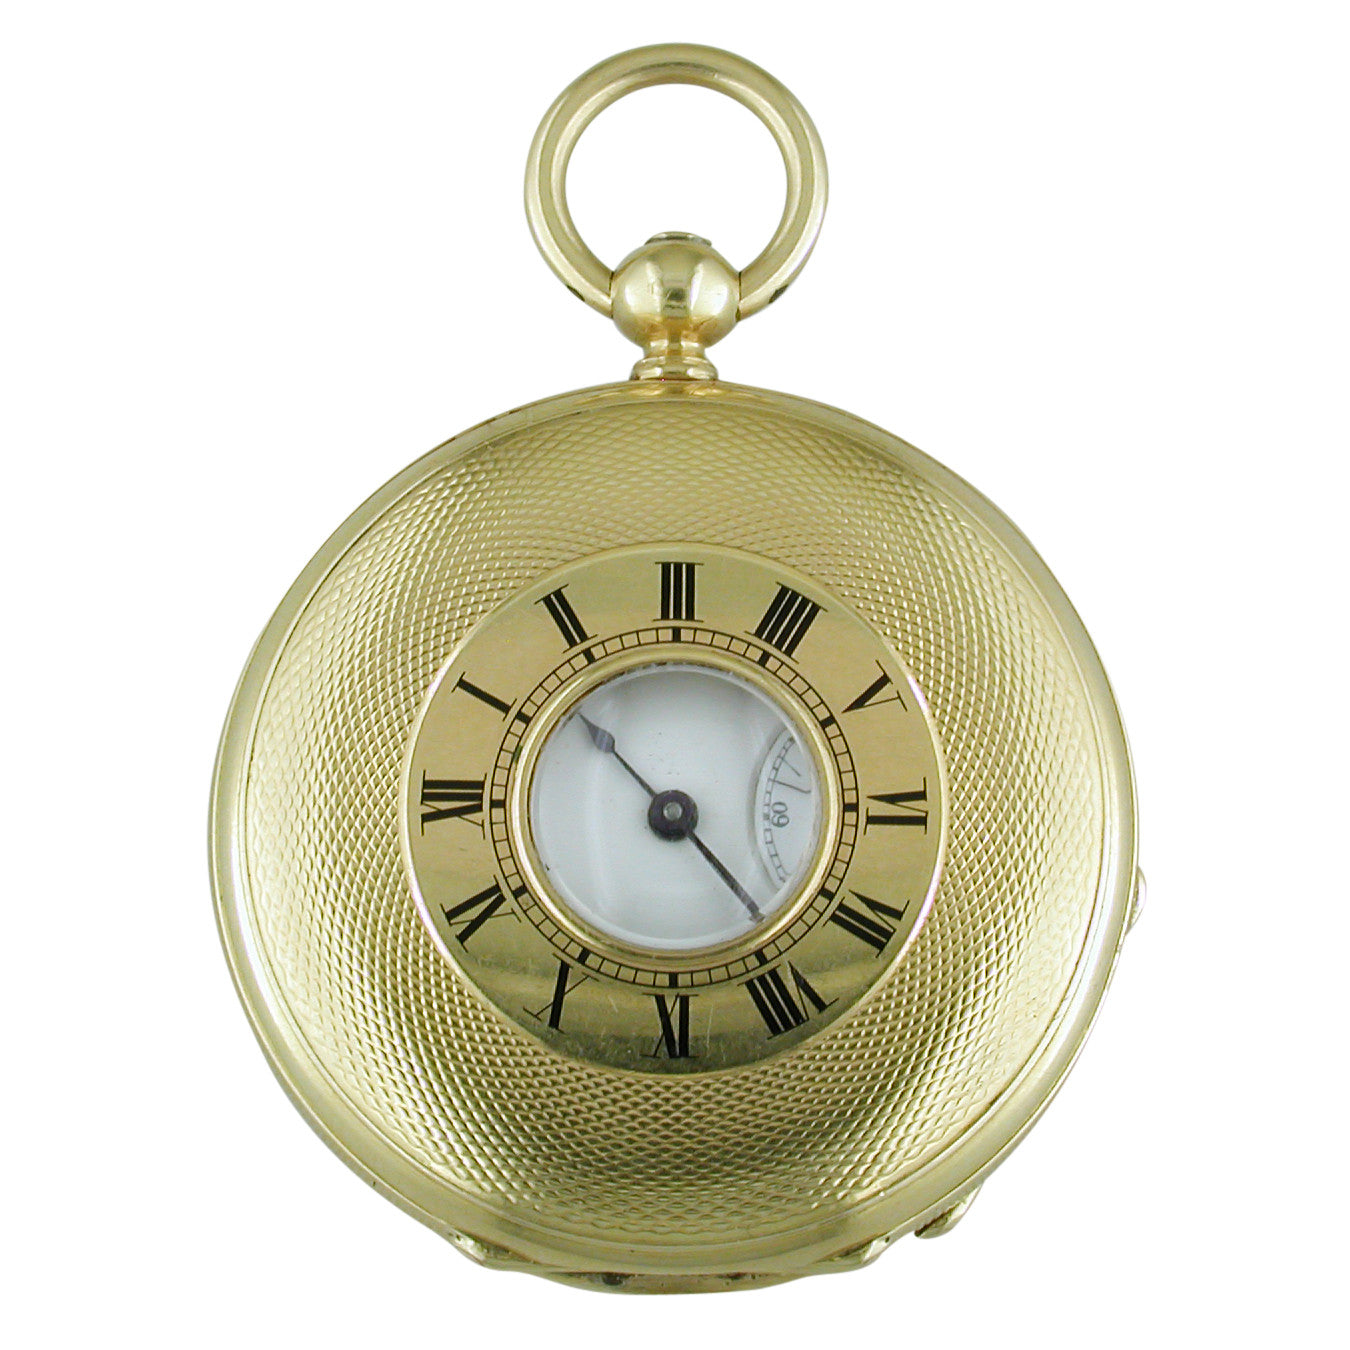 Pre-owned Henry Capt. Geneve 18K Yellow Gold Repeater Pocket Watch Keywind Demi Hunter Case circa 1900